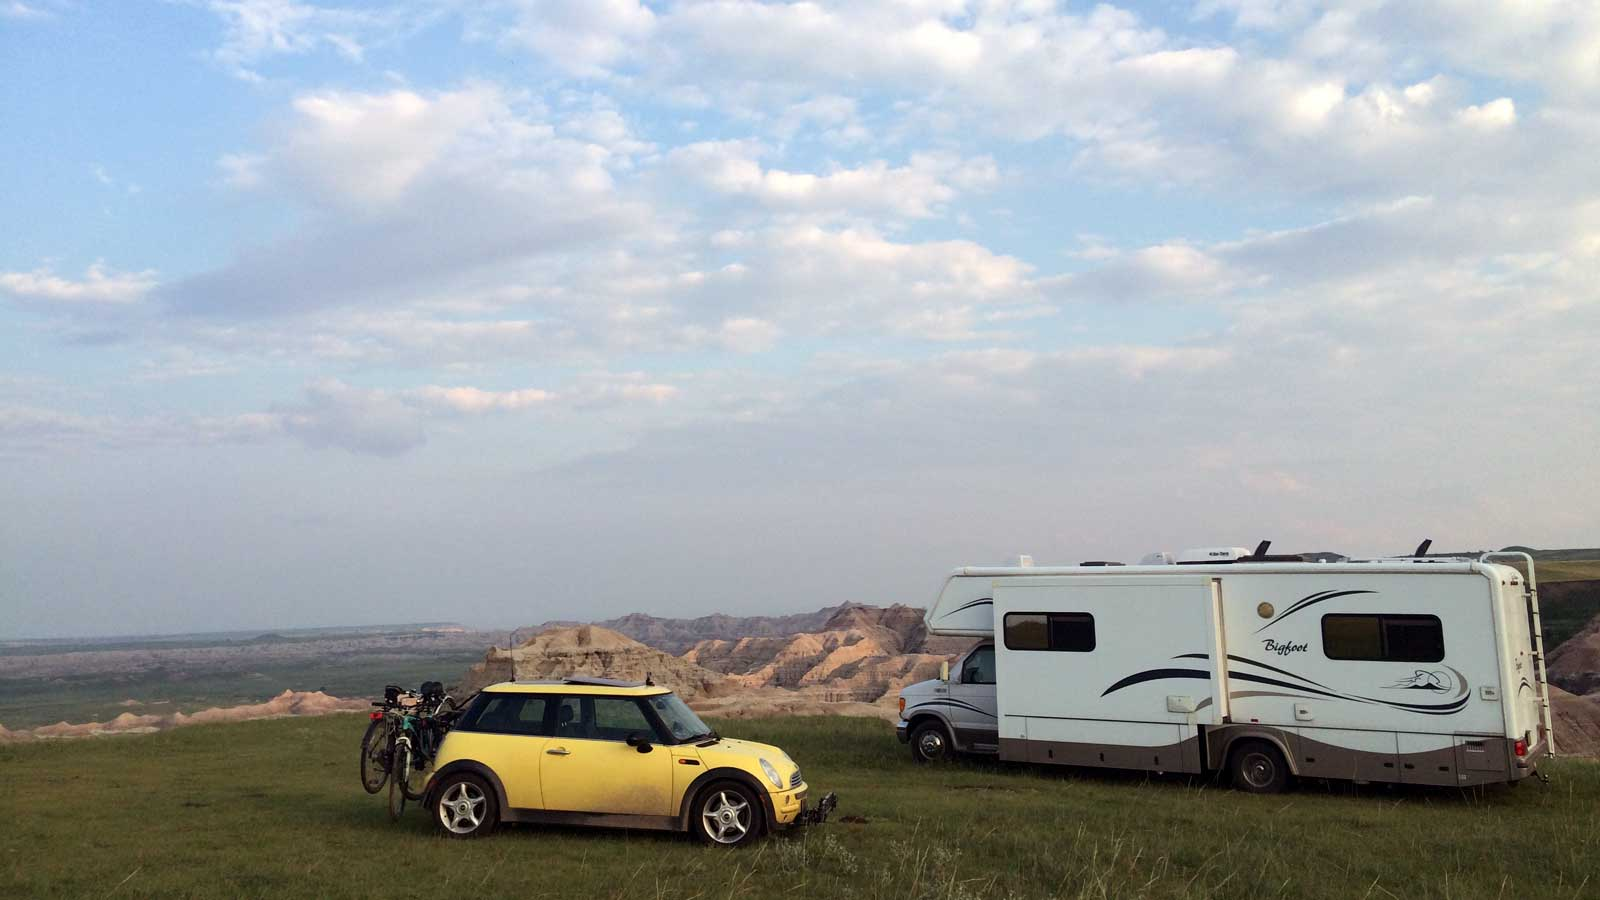 Parked on the prairie overlooking the Badlands of South Dakota